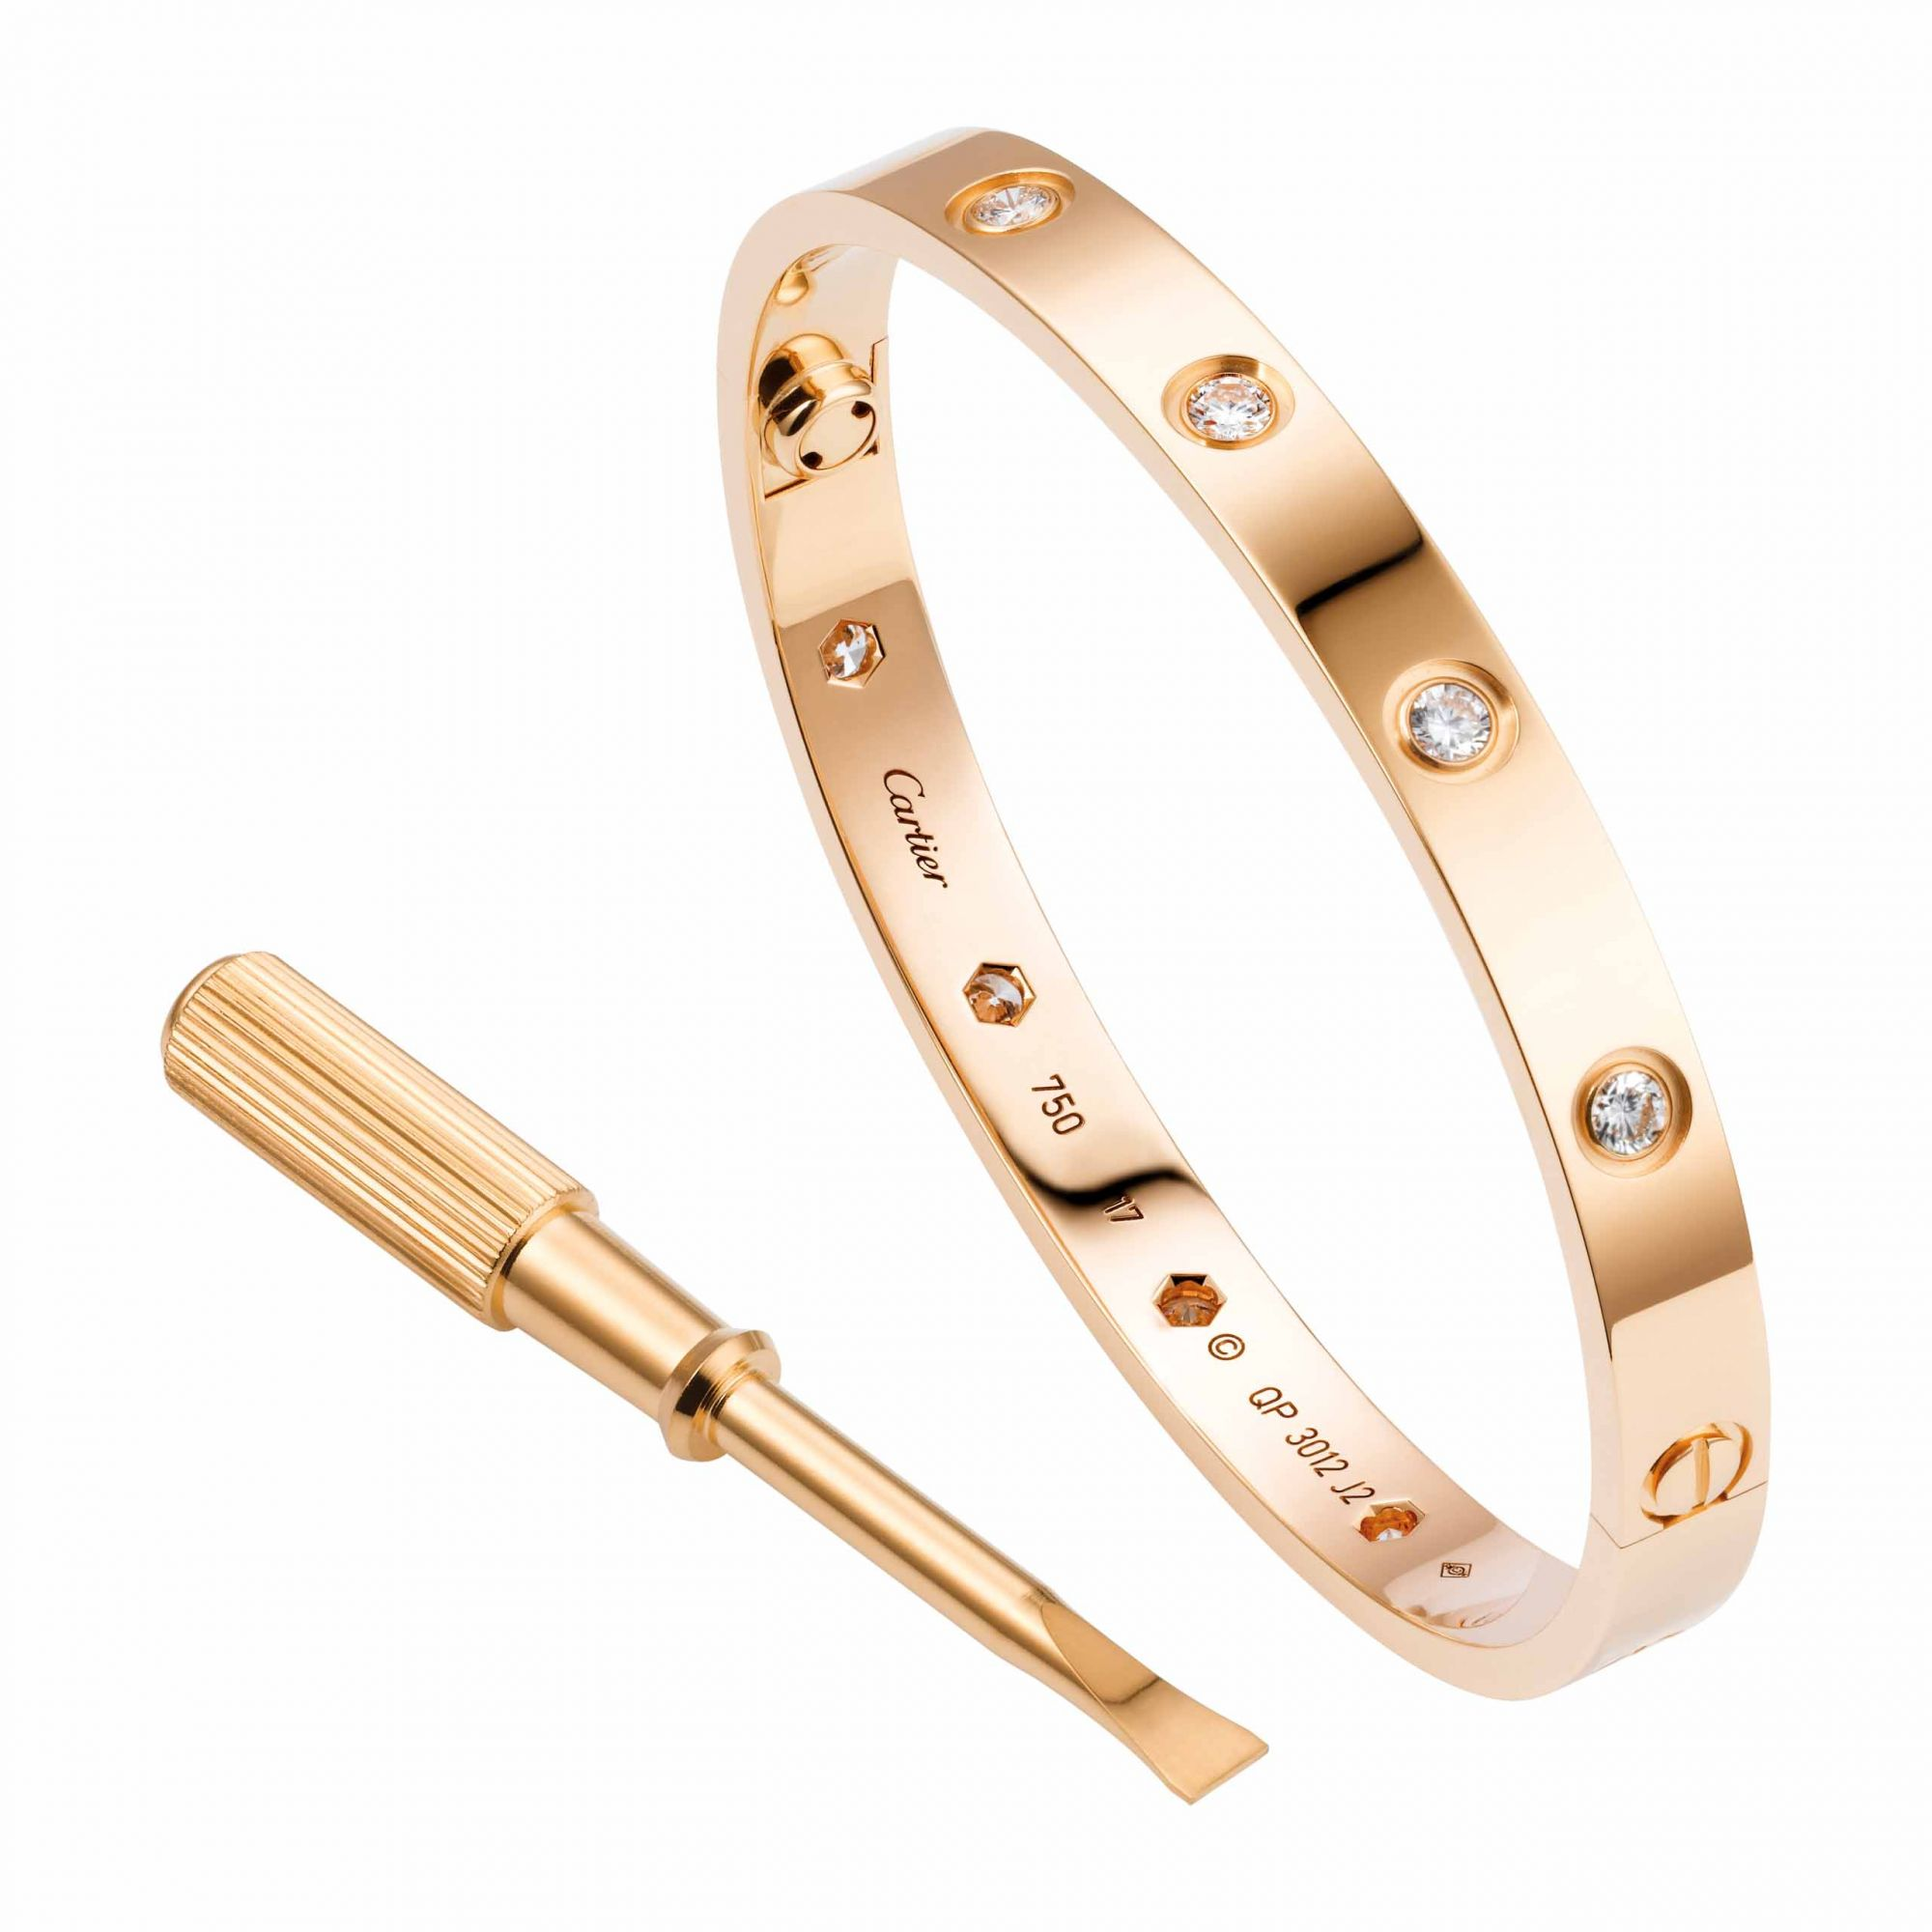 f2cdb5a4db035 10 Things You Didn't Know About the Cartier Love Bracelet ...